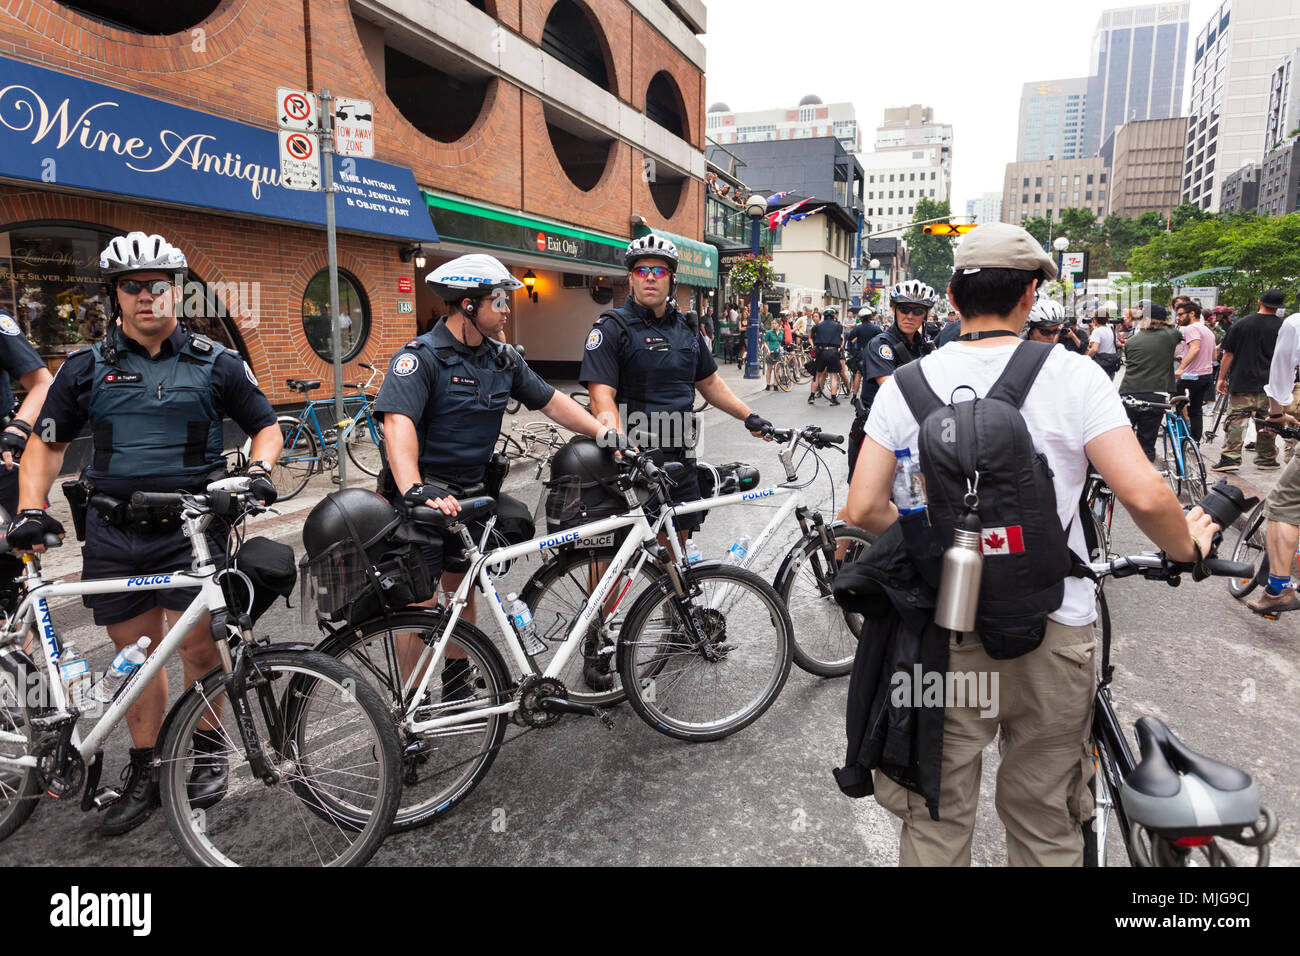 A police blockade along Queen Street during the G20 summit in Downtown Toronto, Ontario, Canada. - Stock Image